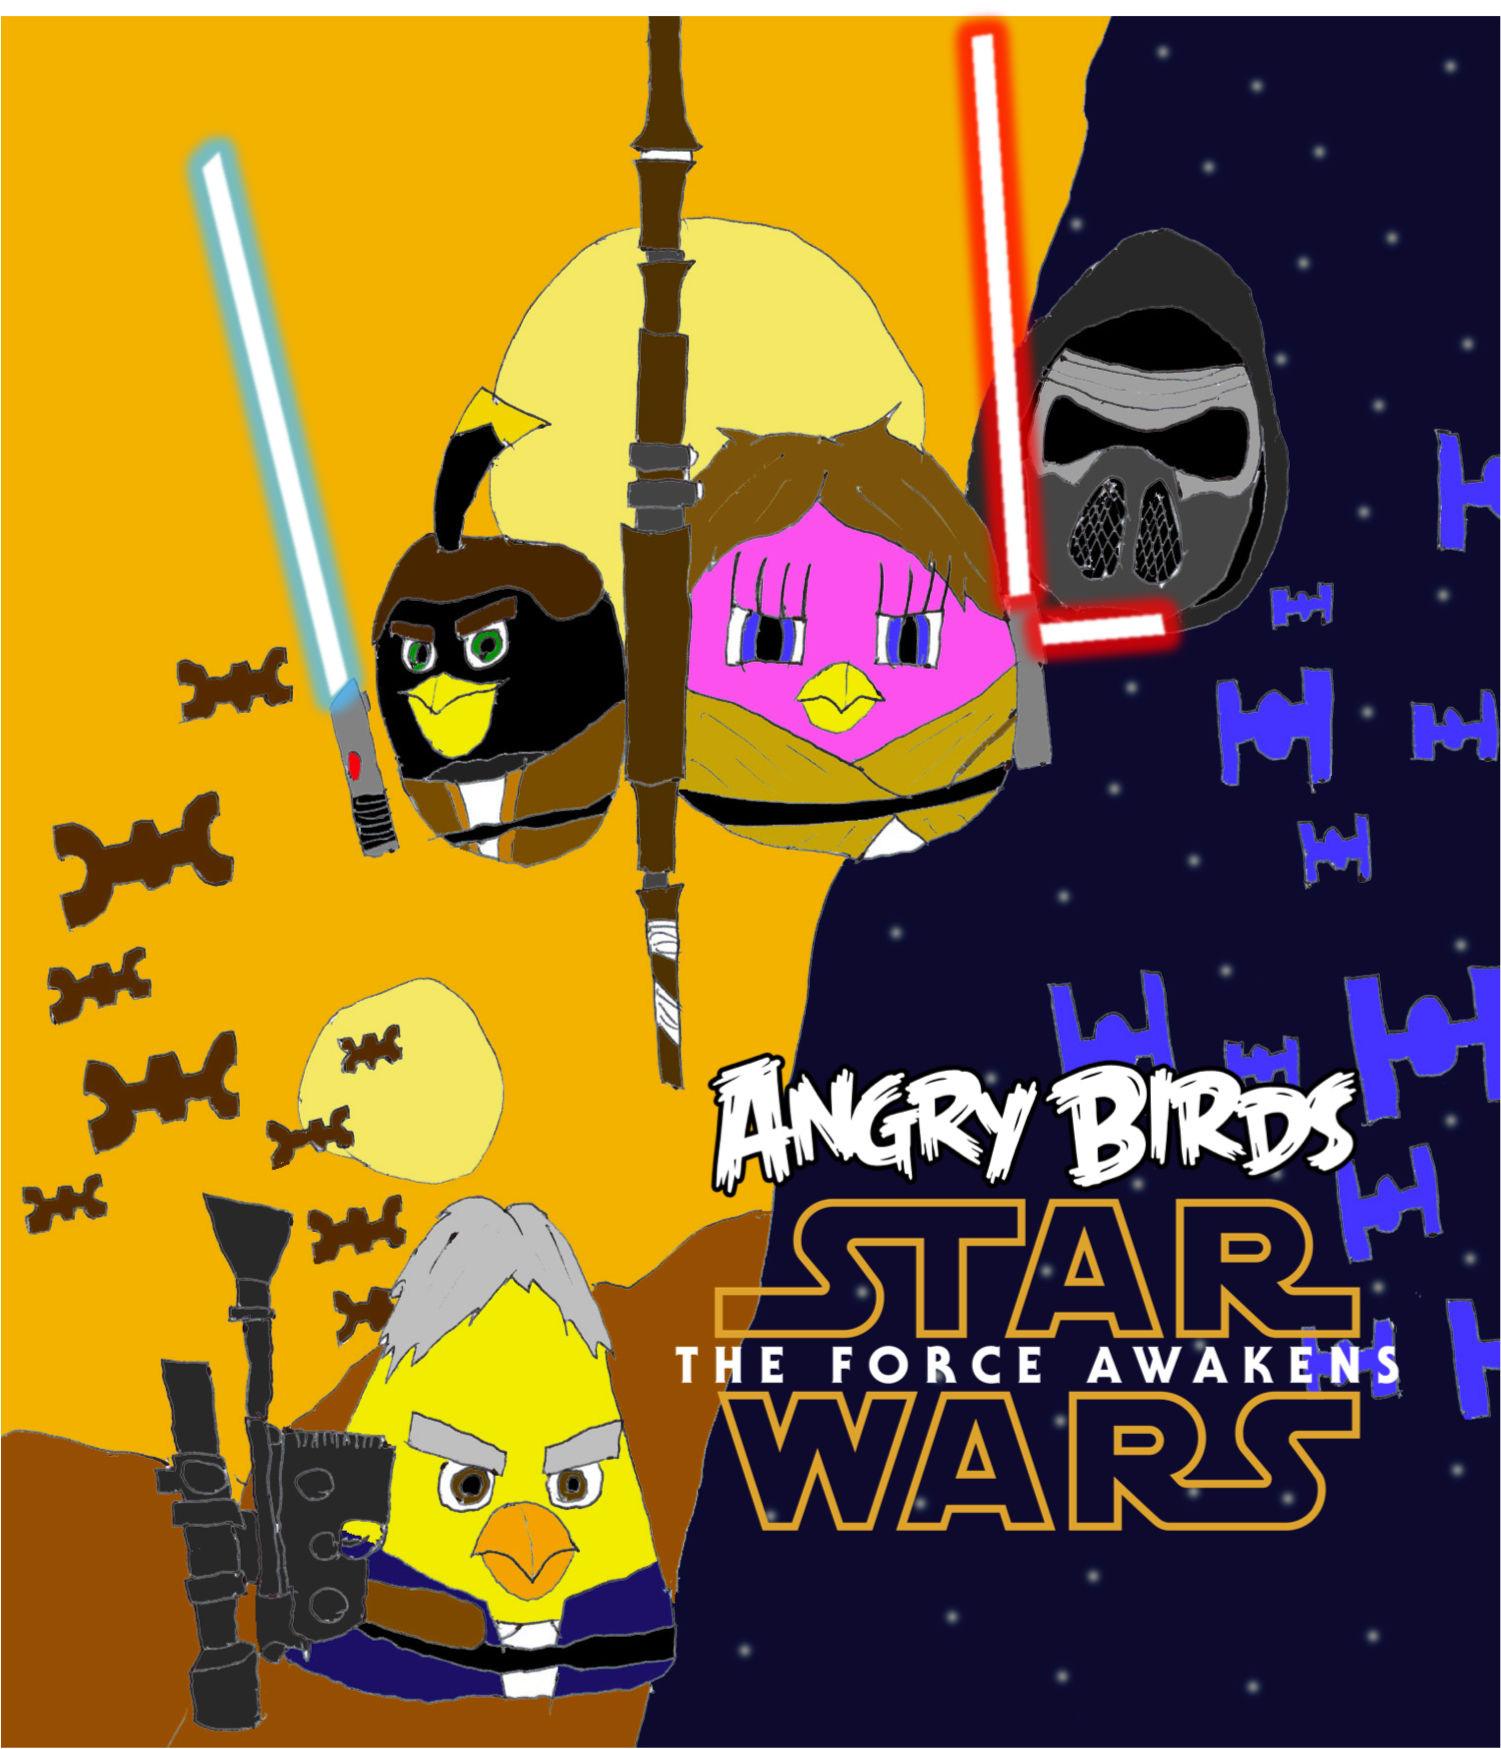 Angry Birds Star Wars The Force Awakens Poster by FanAngryBirds